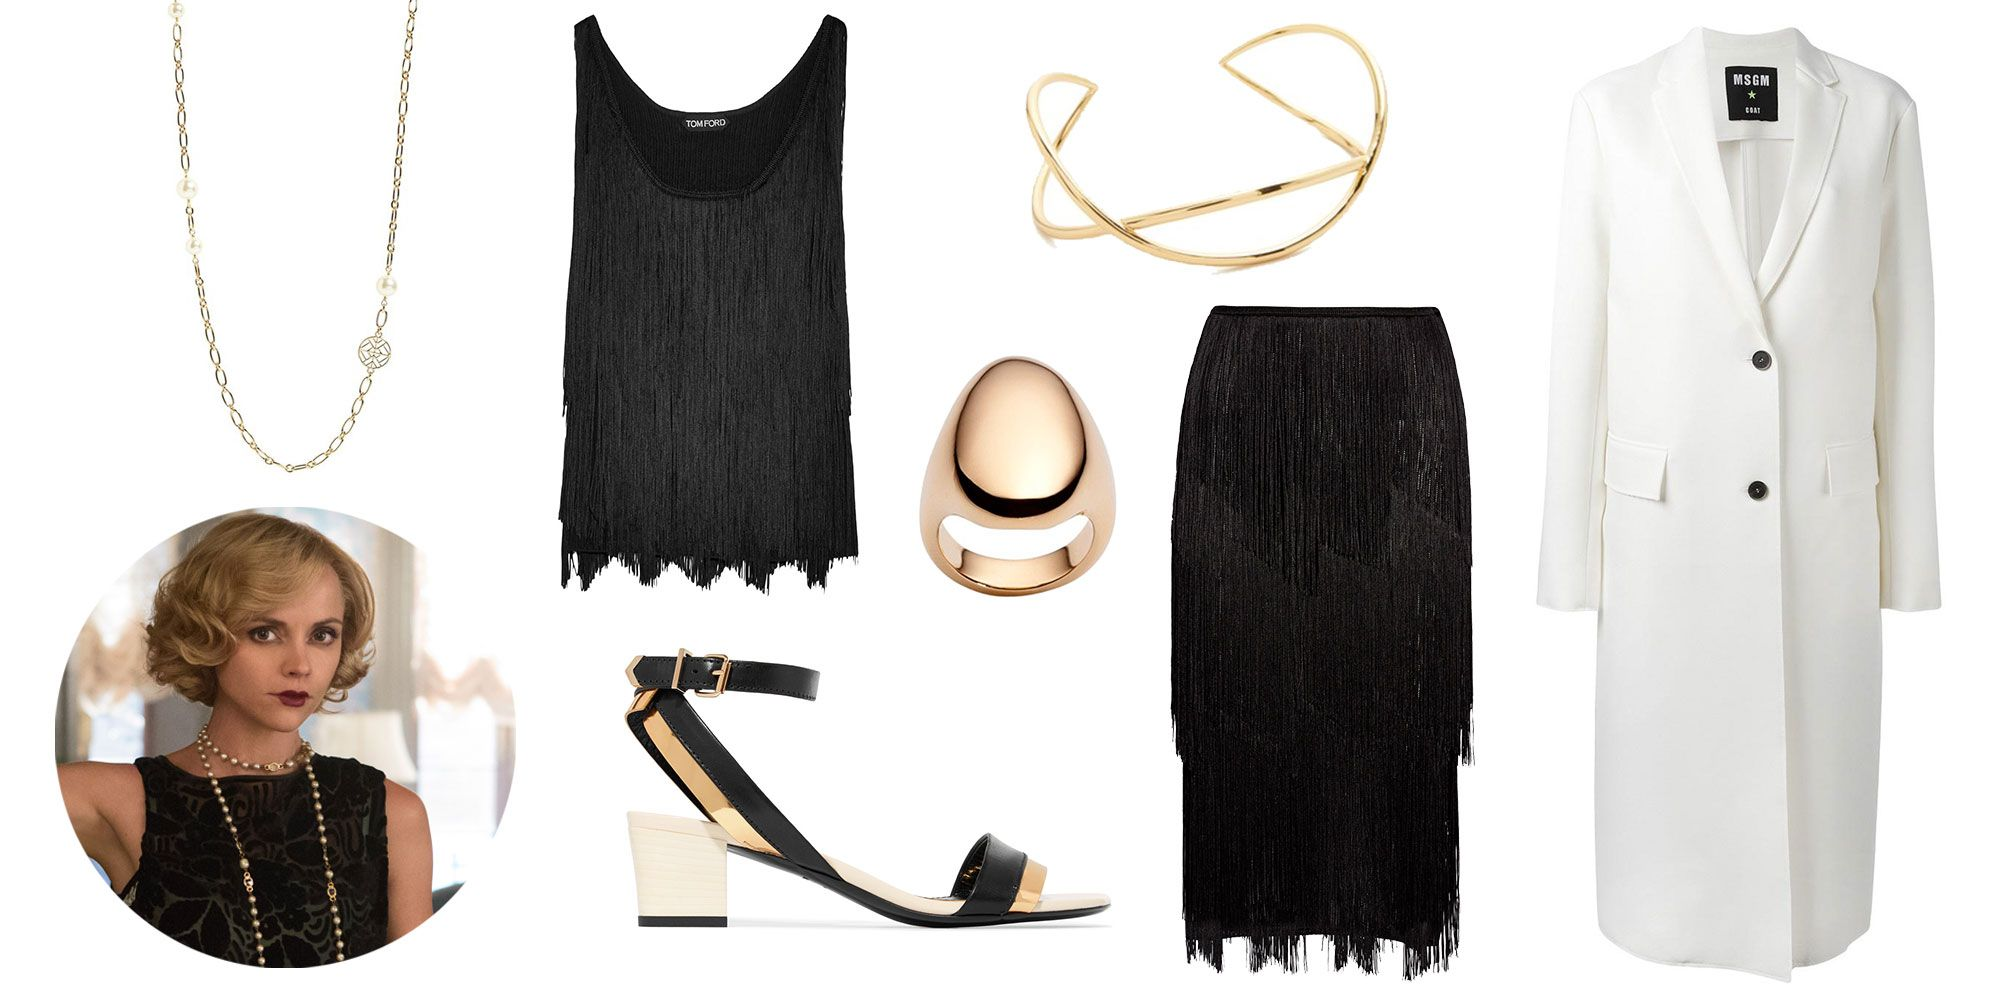 72d347c5d359 How to Wear 1920s Outfits - Looks Inspired by Zelda Fitzgerald